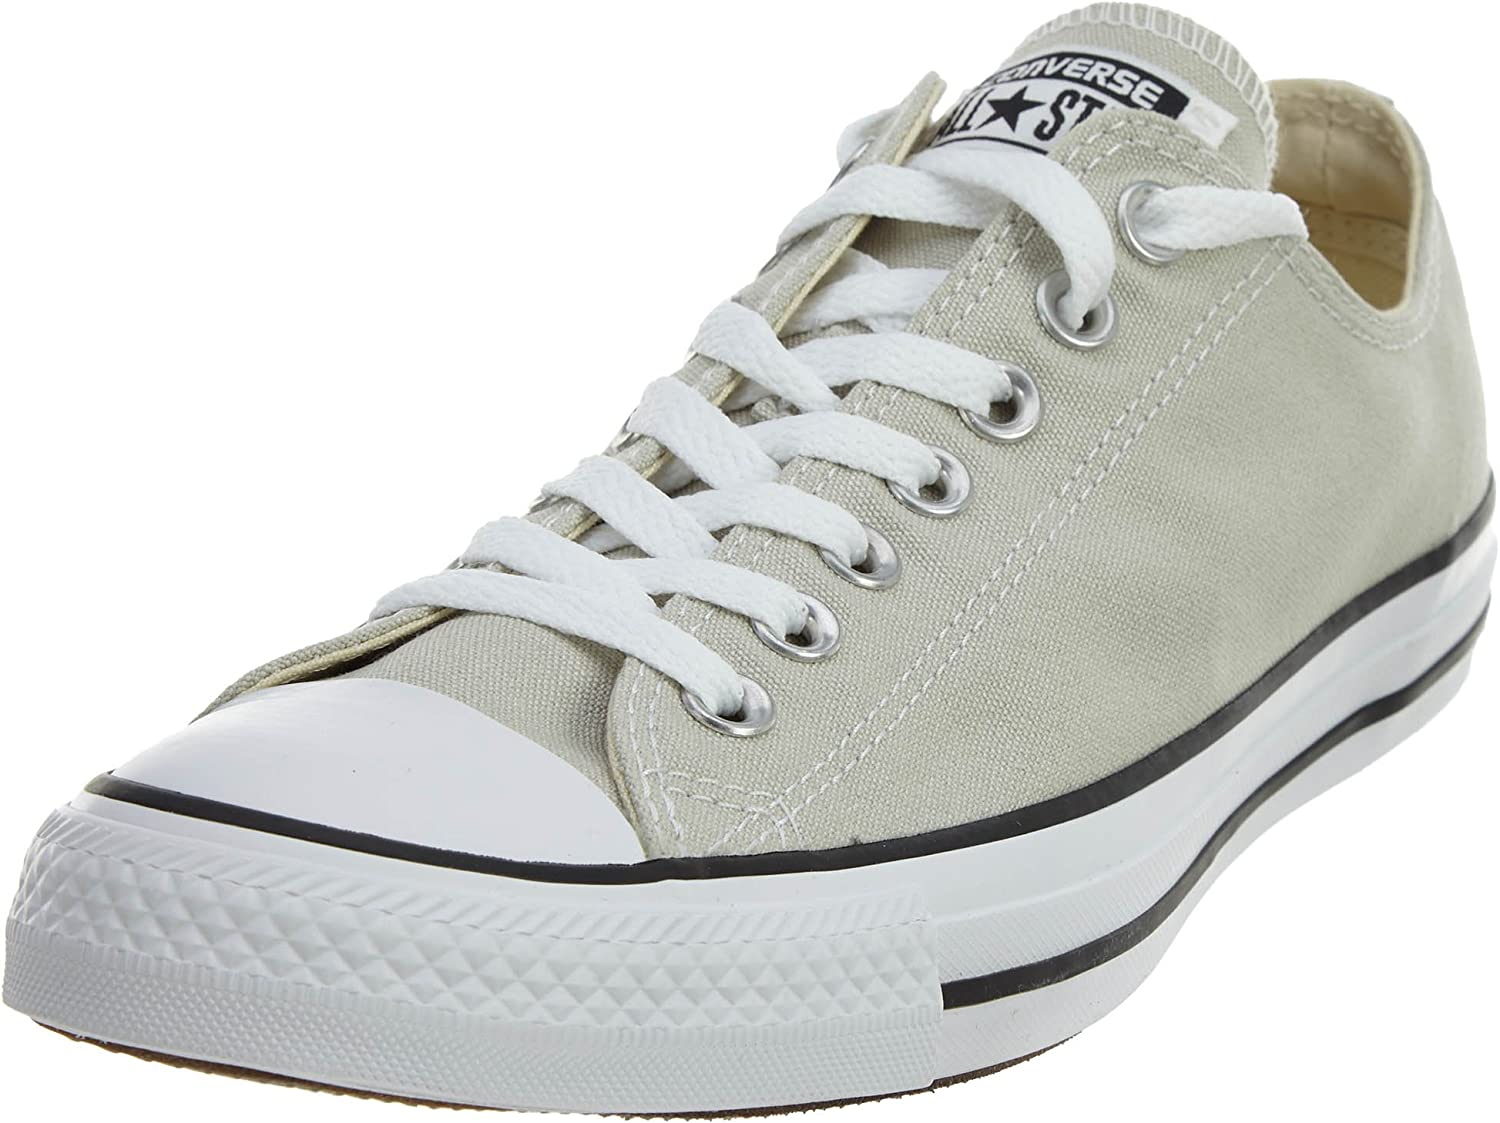 Converse Unisex shoes All Star Lo Light Surplus Fashion Sneakera